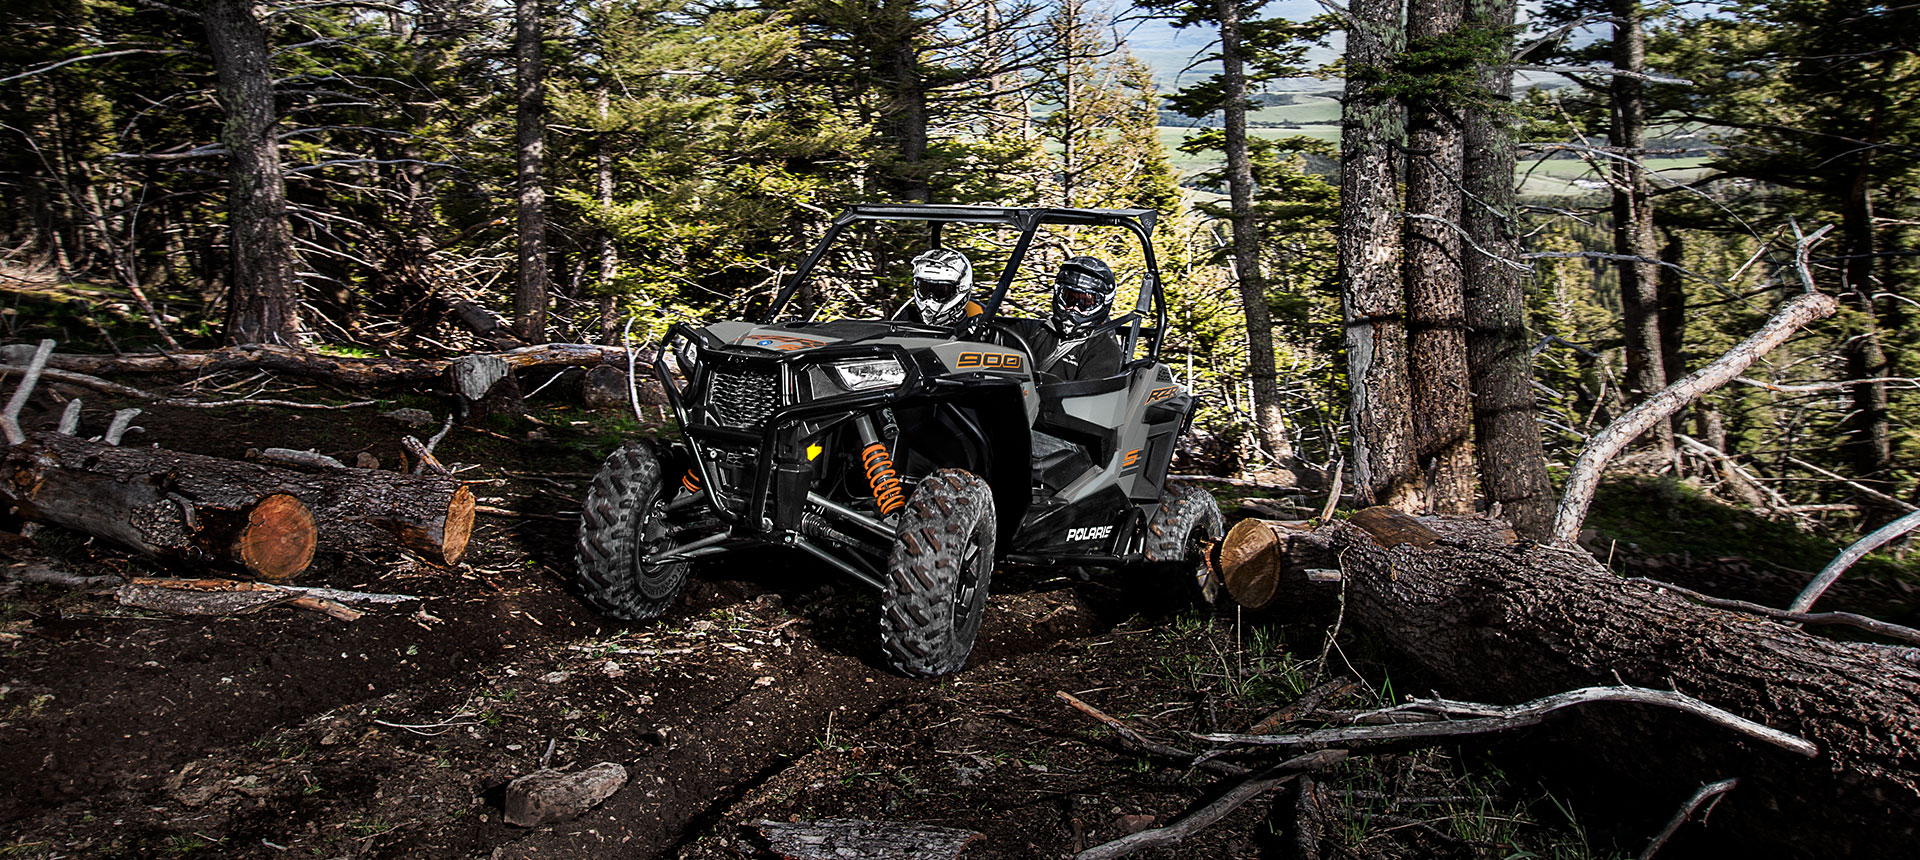 2019 Polaris RZR S 900 in Thornville, Ohio - Photo 2